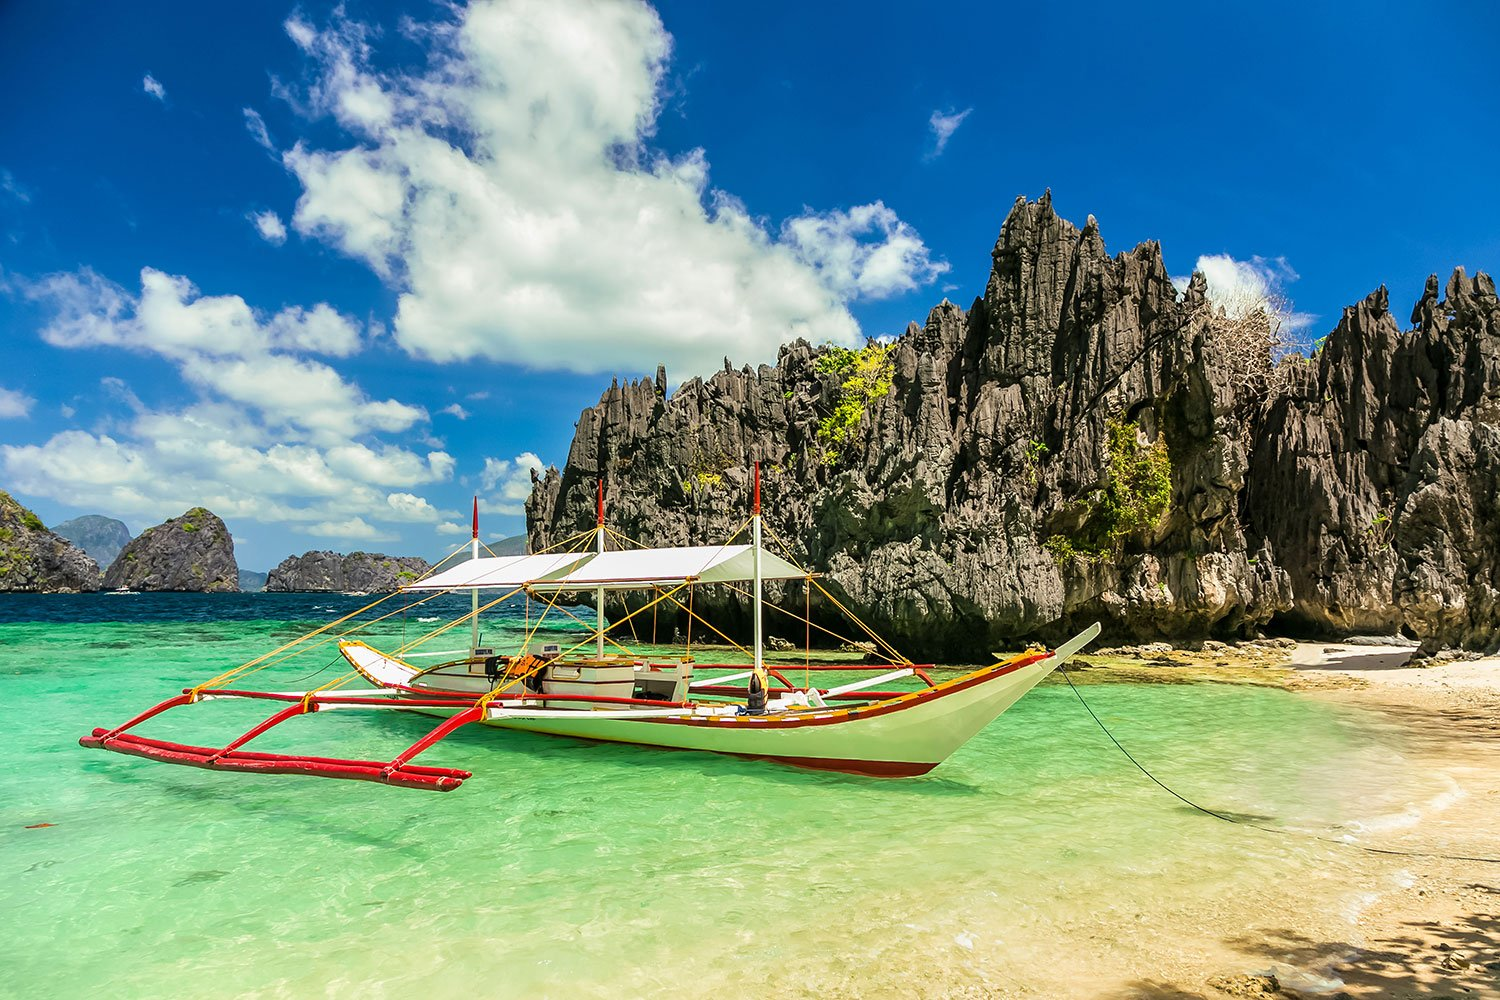 A red and white boat docks on the coast of the Philippines